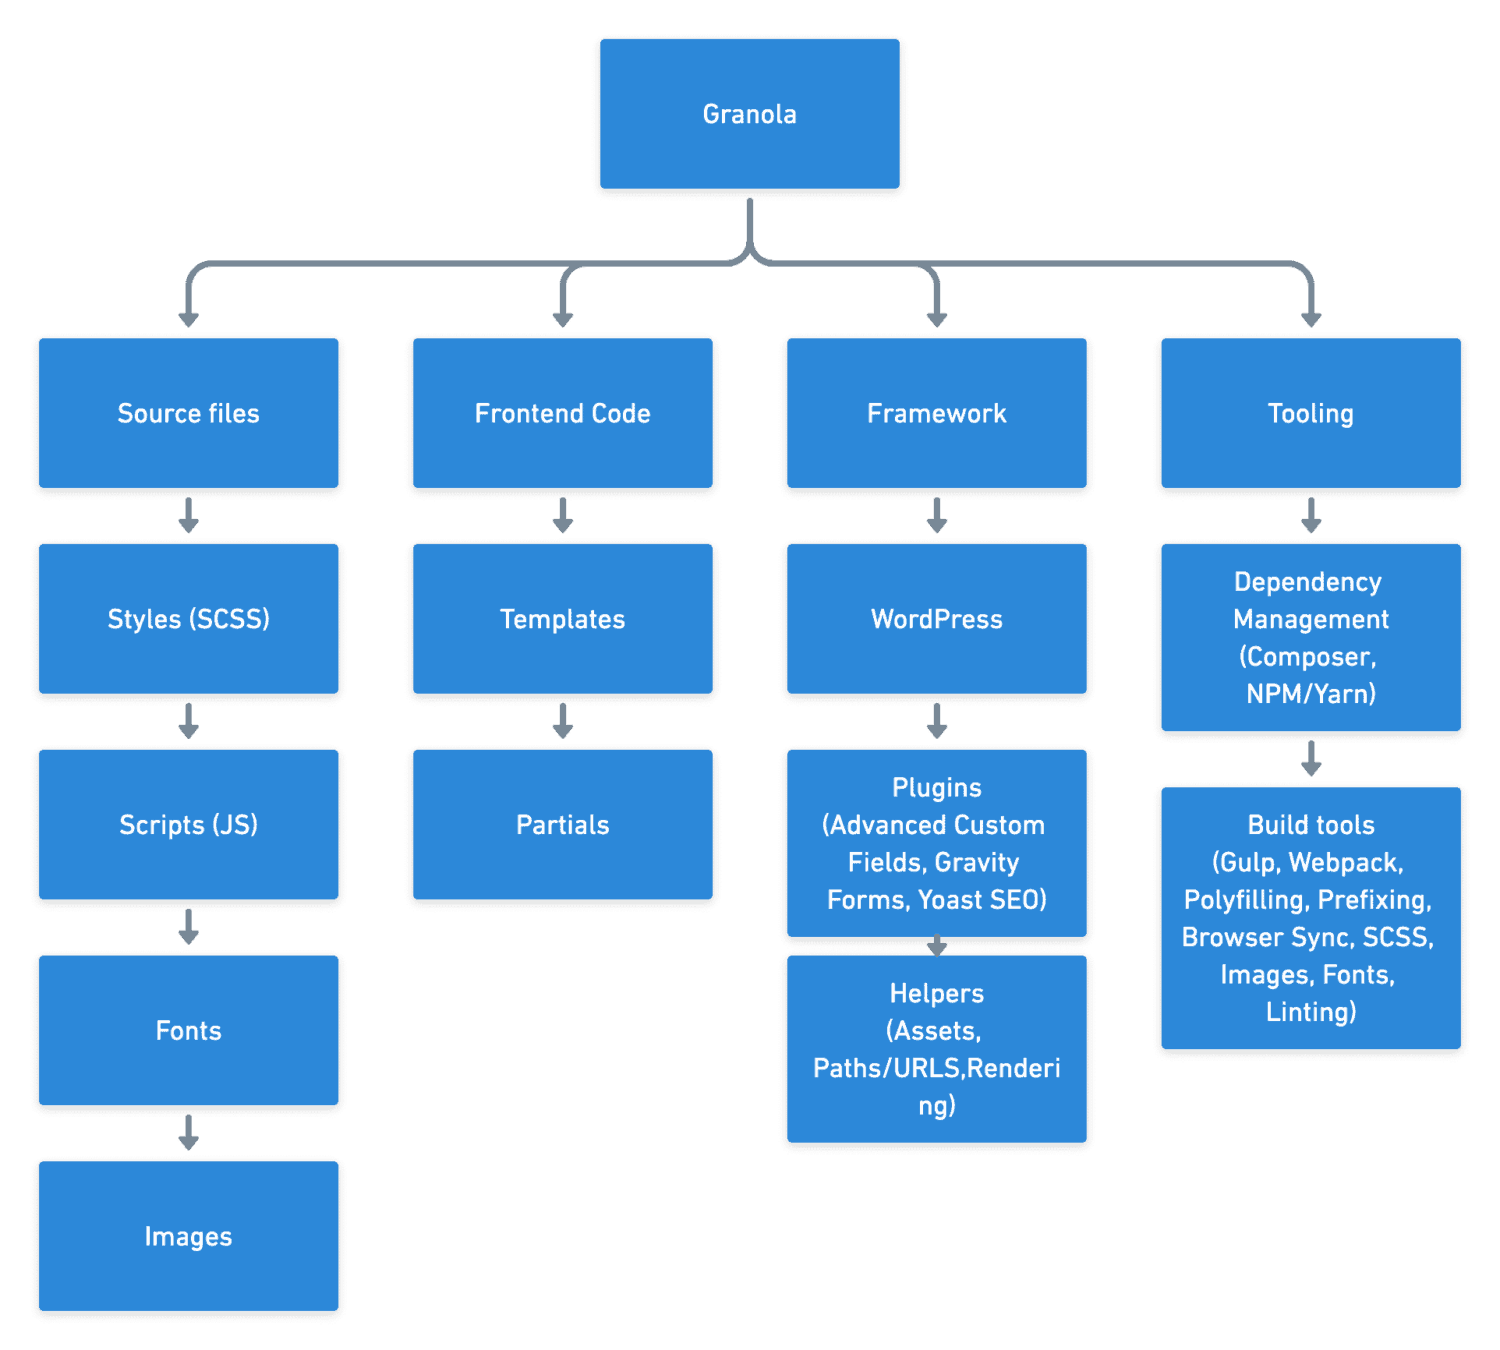 Structure of the Granola code base